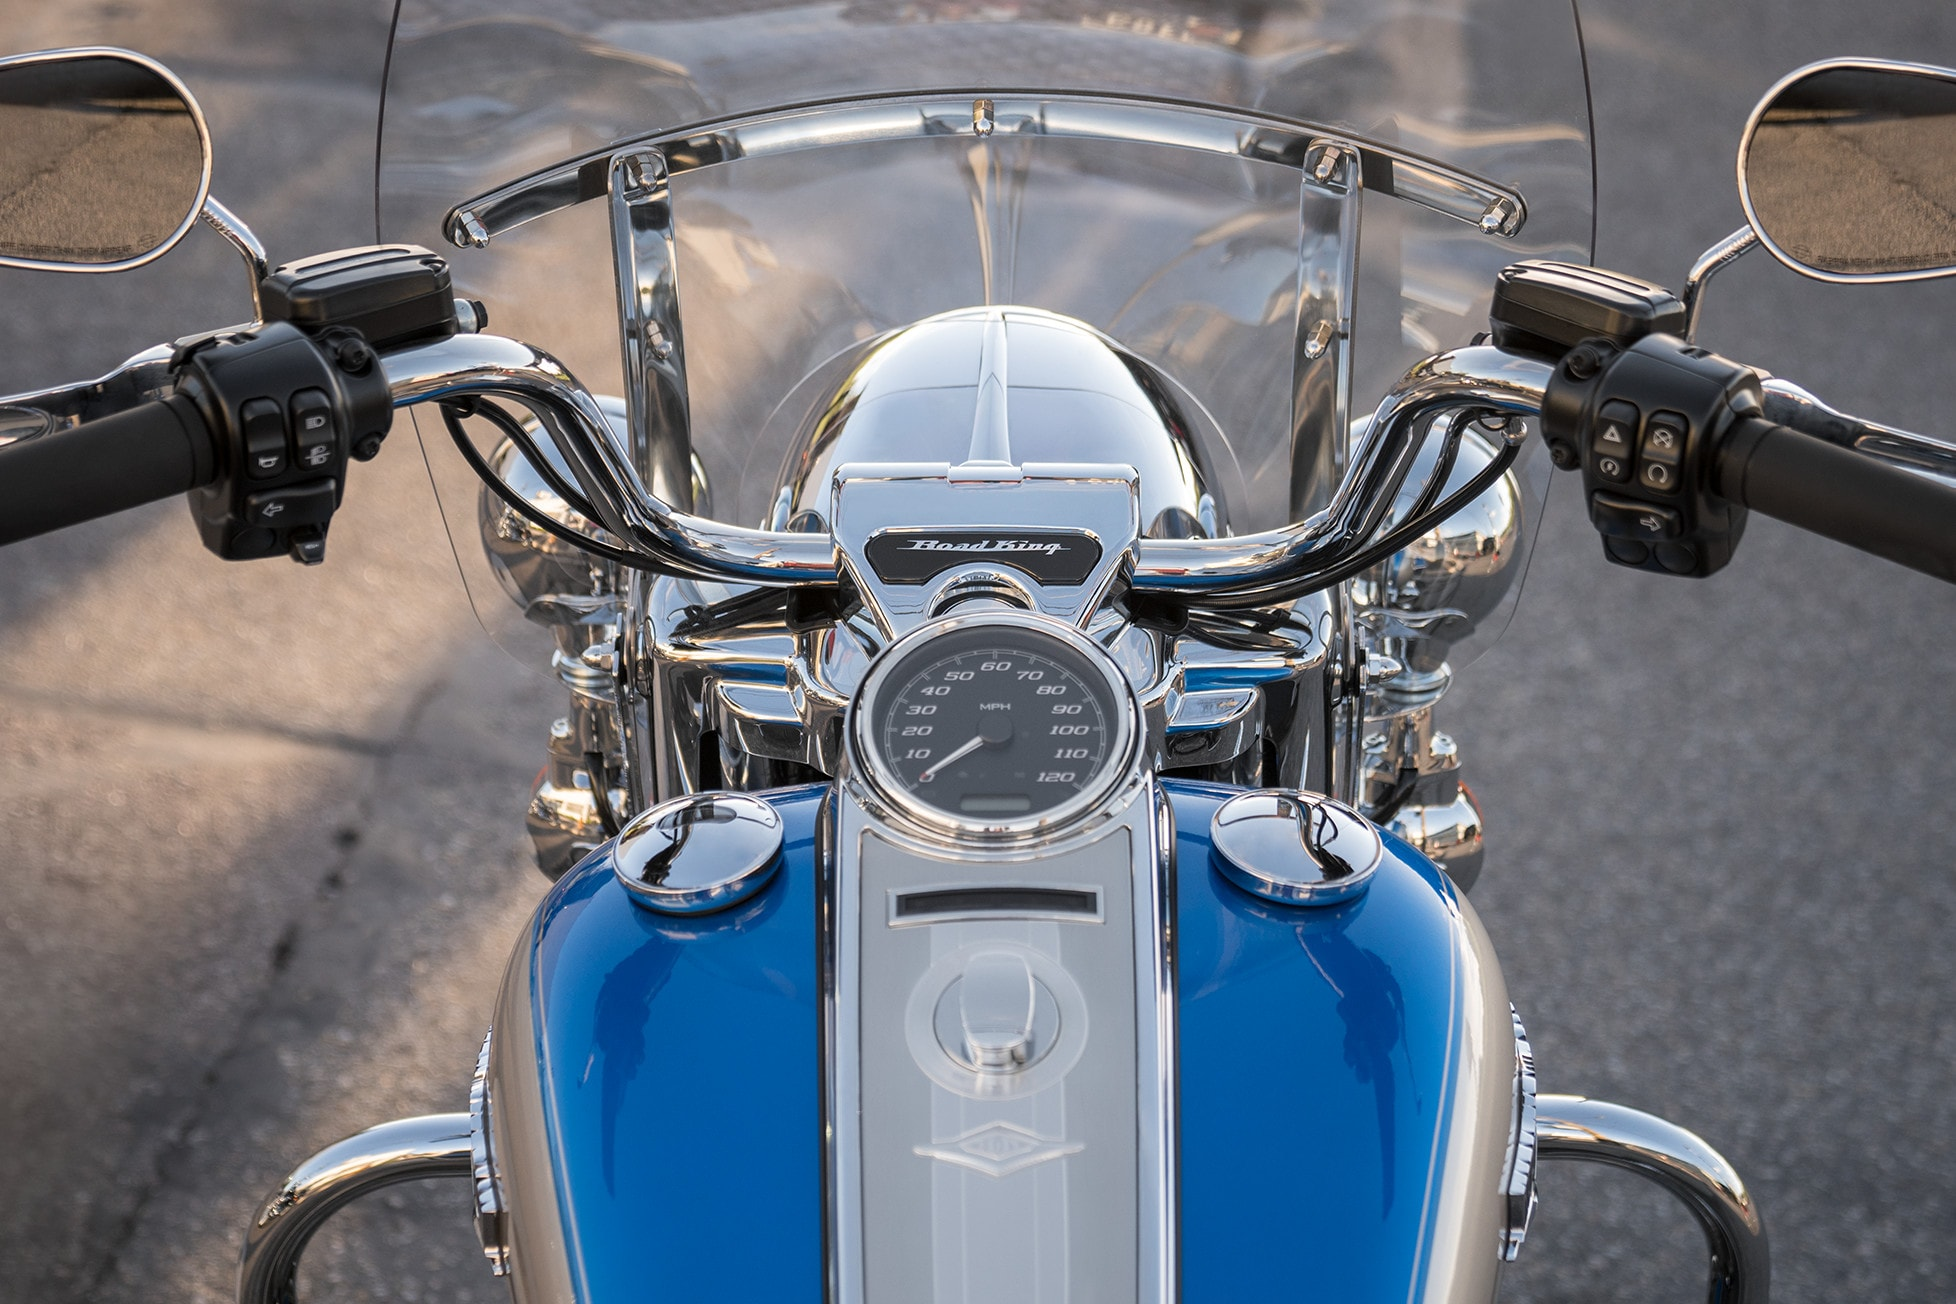 Tri Glide Wiring Diagram Library 2013 Harley Davidson Sportster Road Gas Tank 4 Wire 39 Images Problems